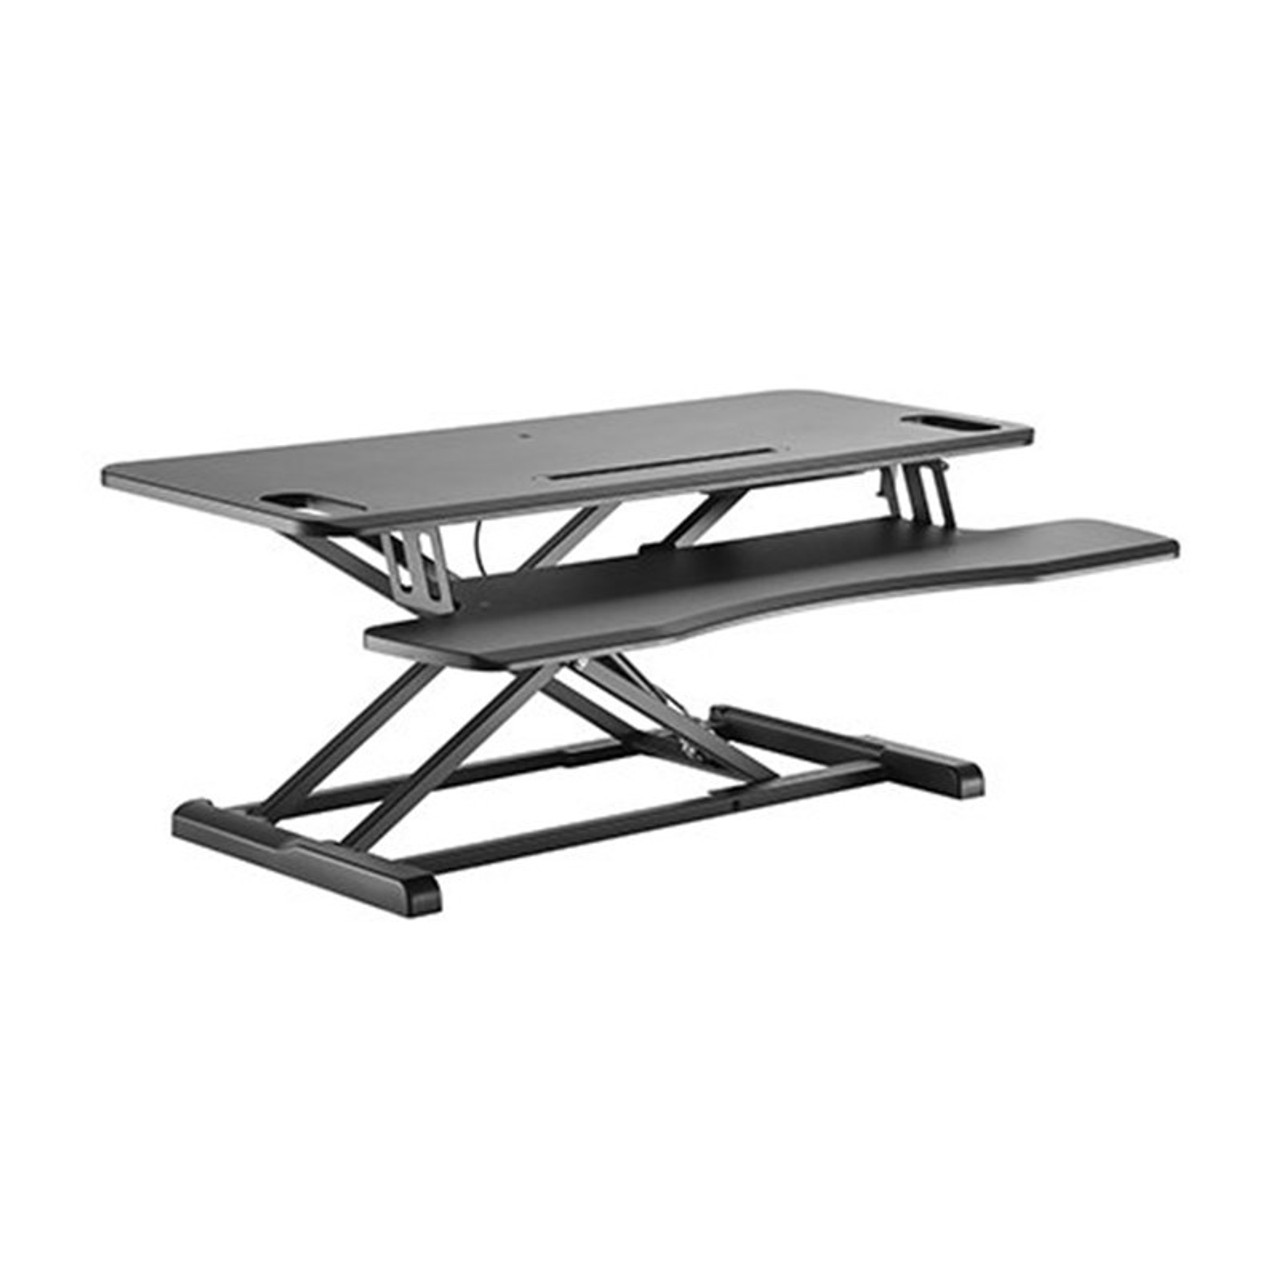 Image for Brateck DWS28 Gas Spring Sit-Stand Desk Converter With Keyboard Tray Deck CX Computer Superstore